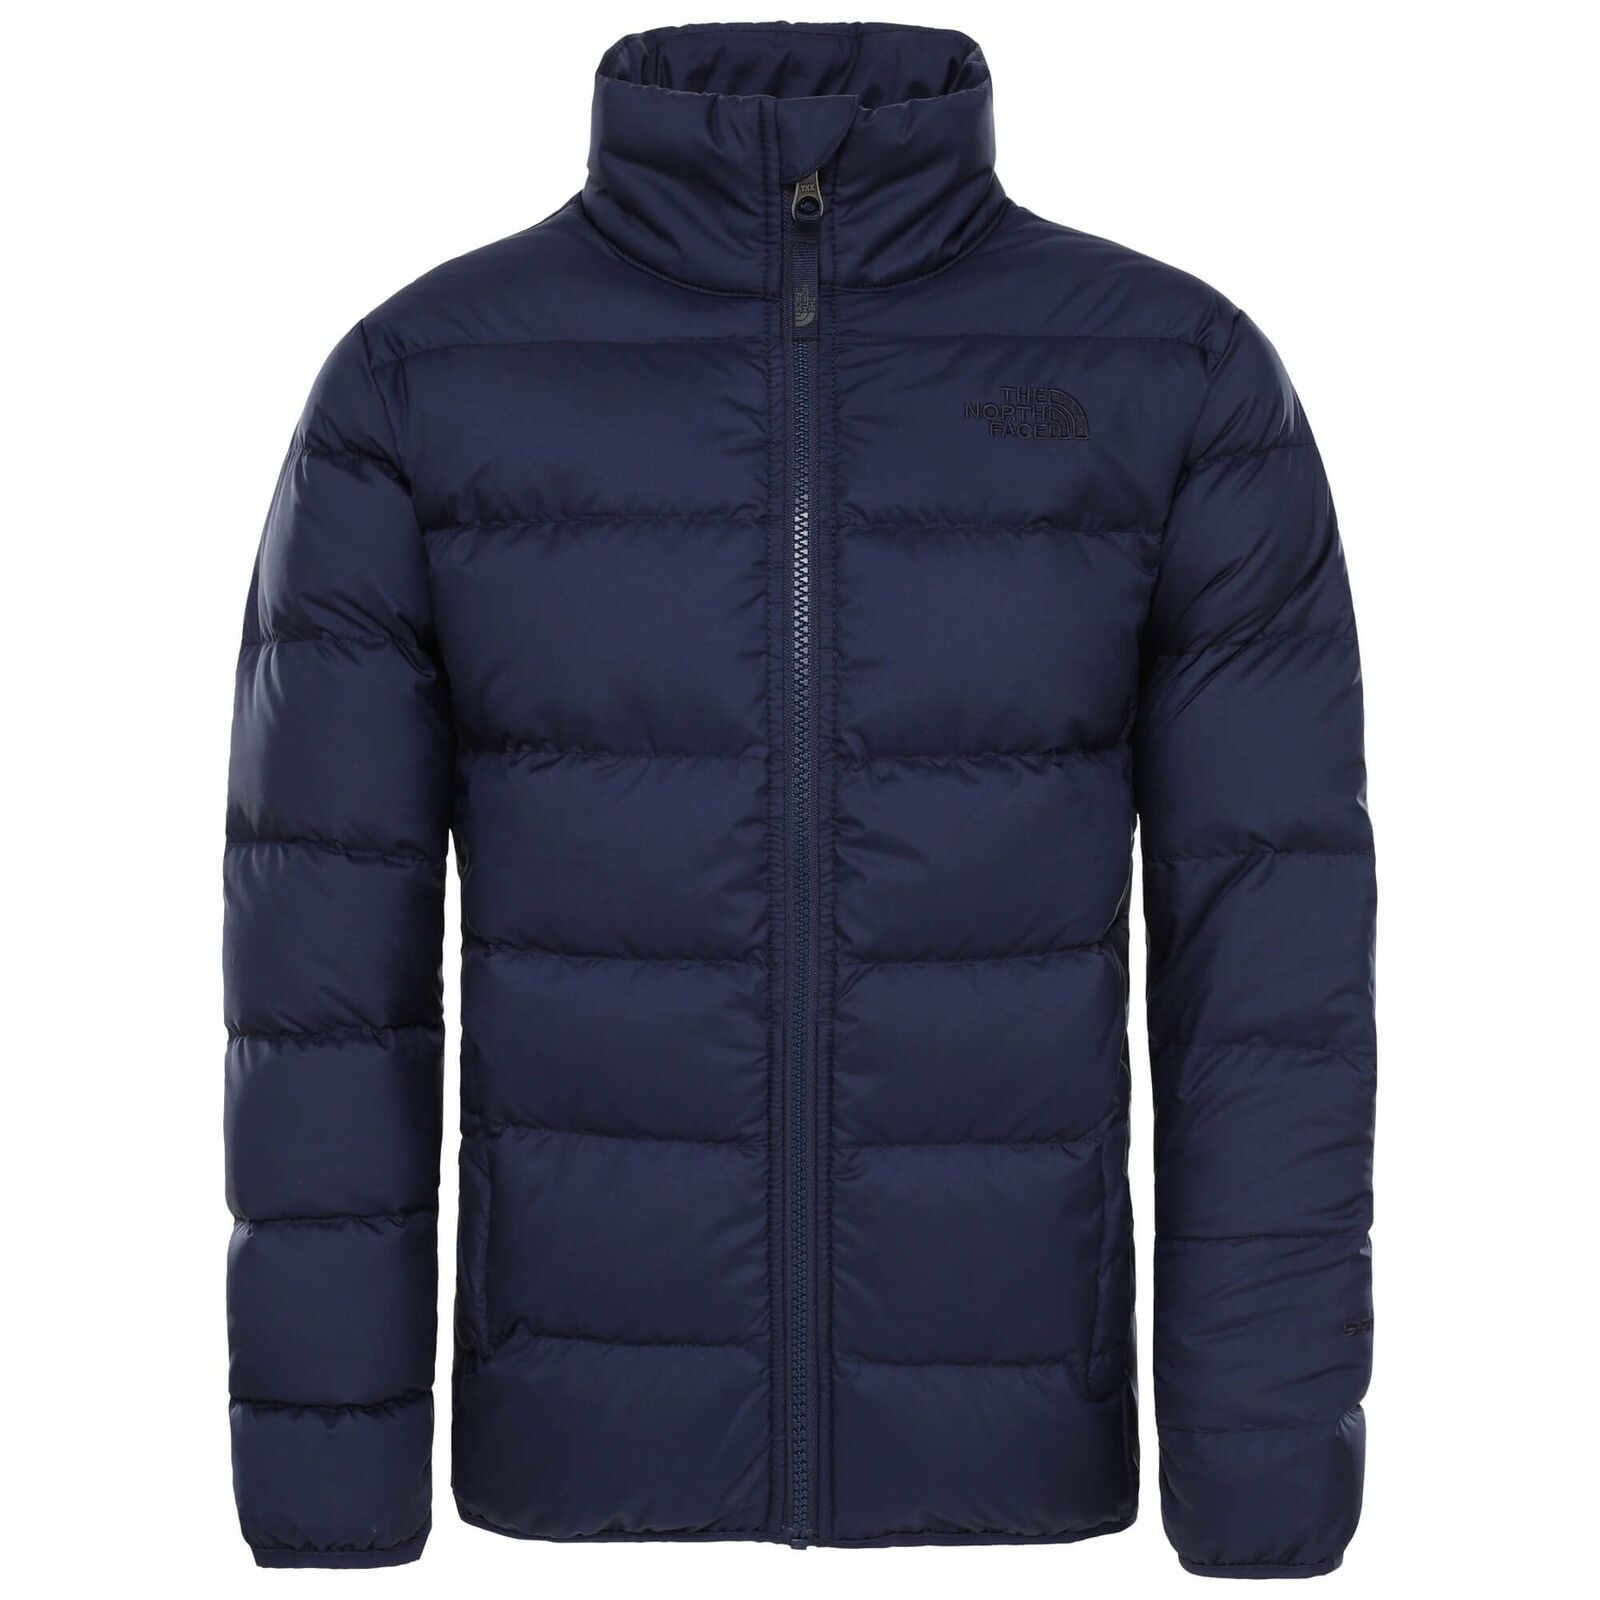 De North Face Jongens Andes Down Insulated Jasje... Monatgue blauw